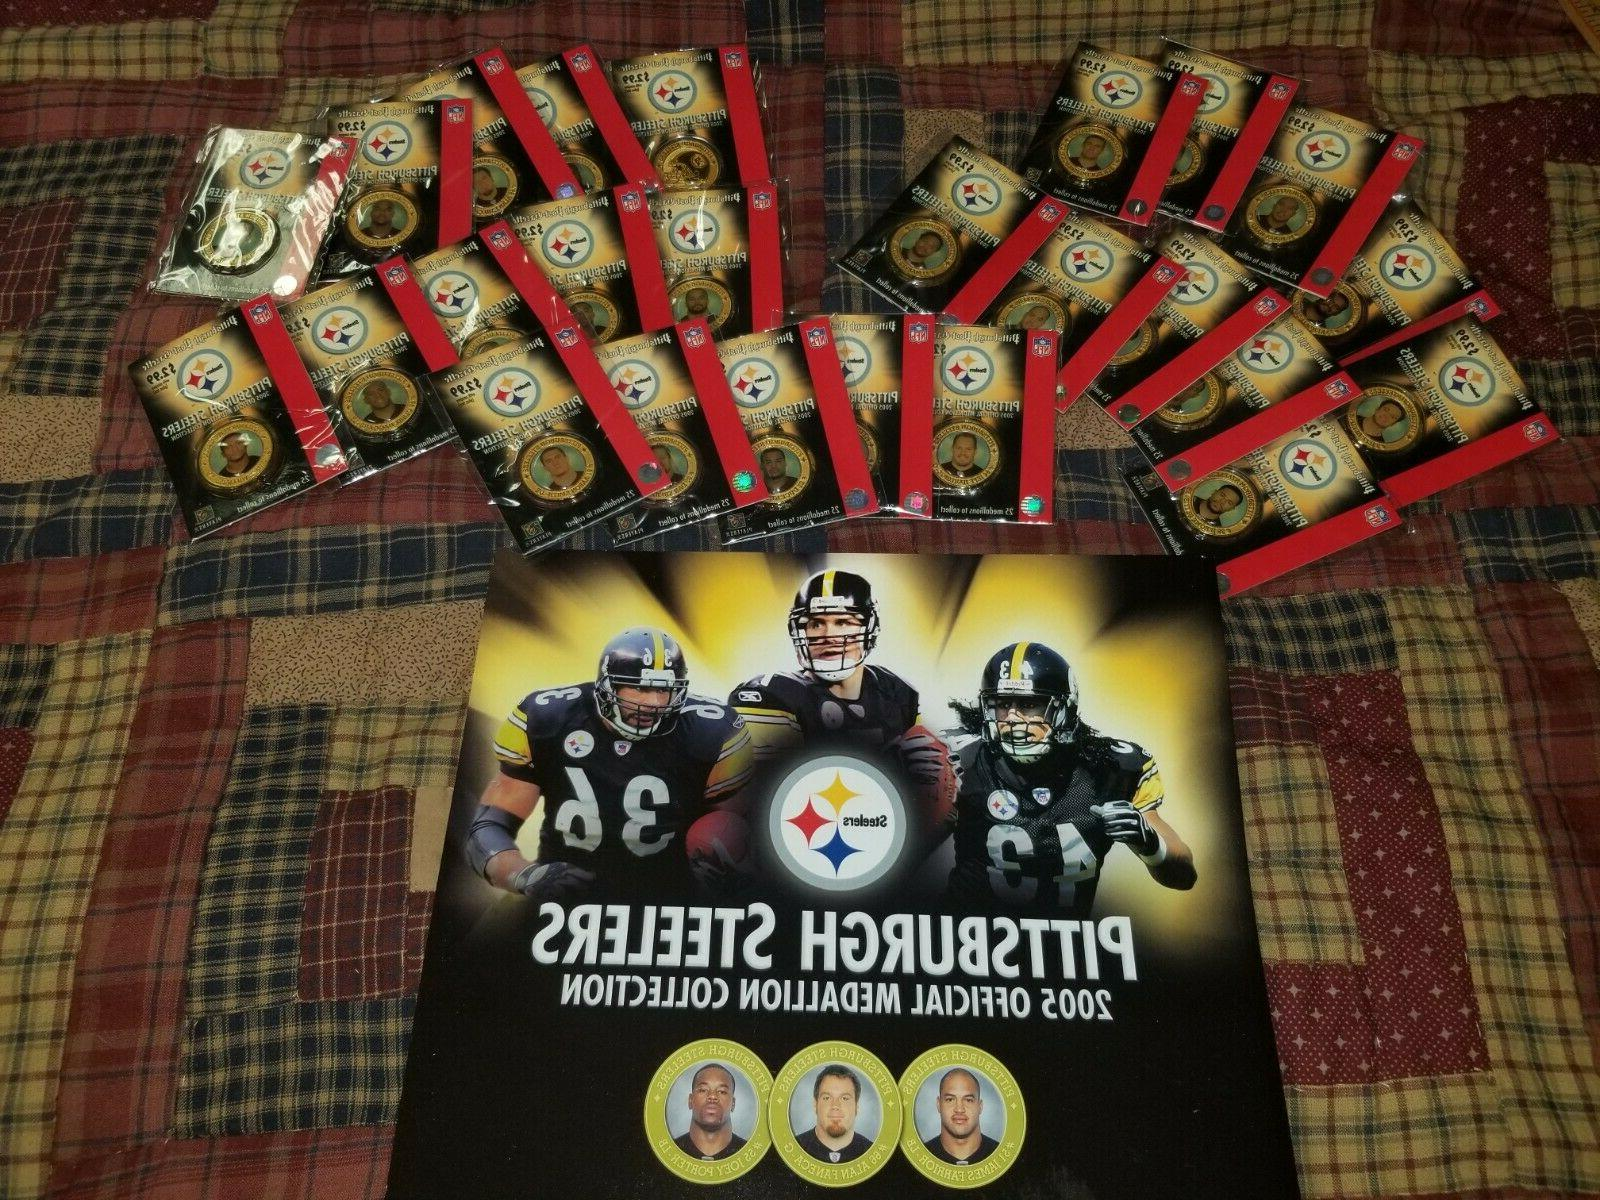 25pc pittsburgh steelers 2005 medallion collection giant